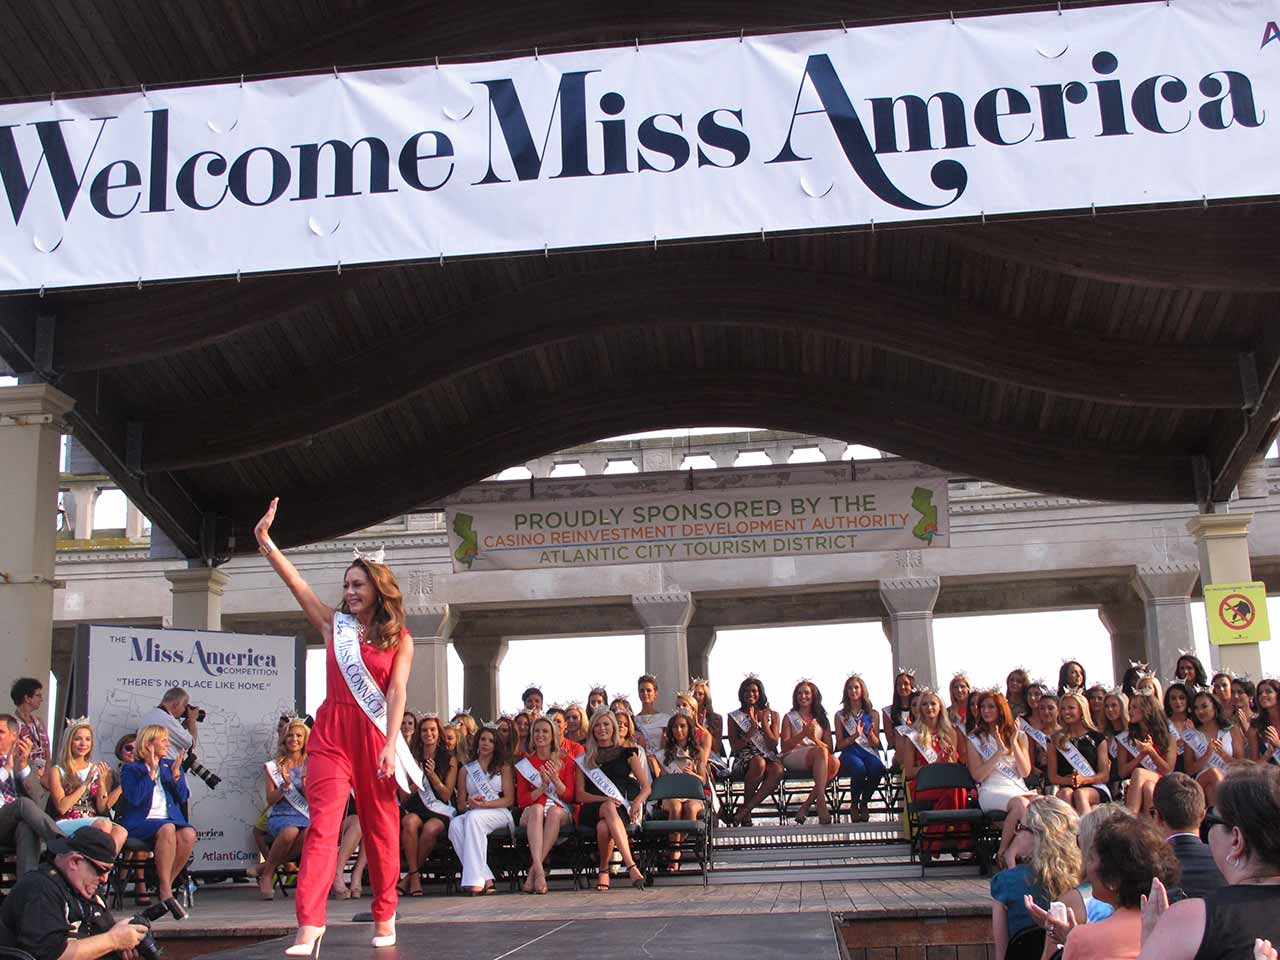 "<div class=""meta image-caption""><div class=""origin-logo origin-image ap""><span>AP</span></div><span class=""caption-text"">Miss Connecticut Colleen Ward walks the runway at the traditional Miss America welcome ceremony on the Atlantic City Boardwalk on Tuesday, Sept. 1, 2015. (AP Photo/Wayne Parry)</span></div>"